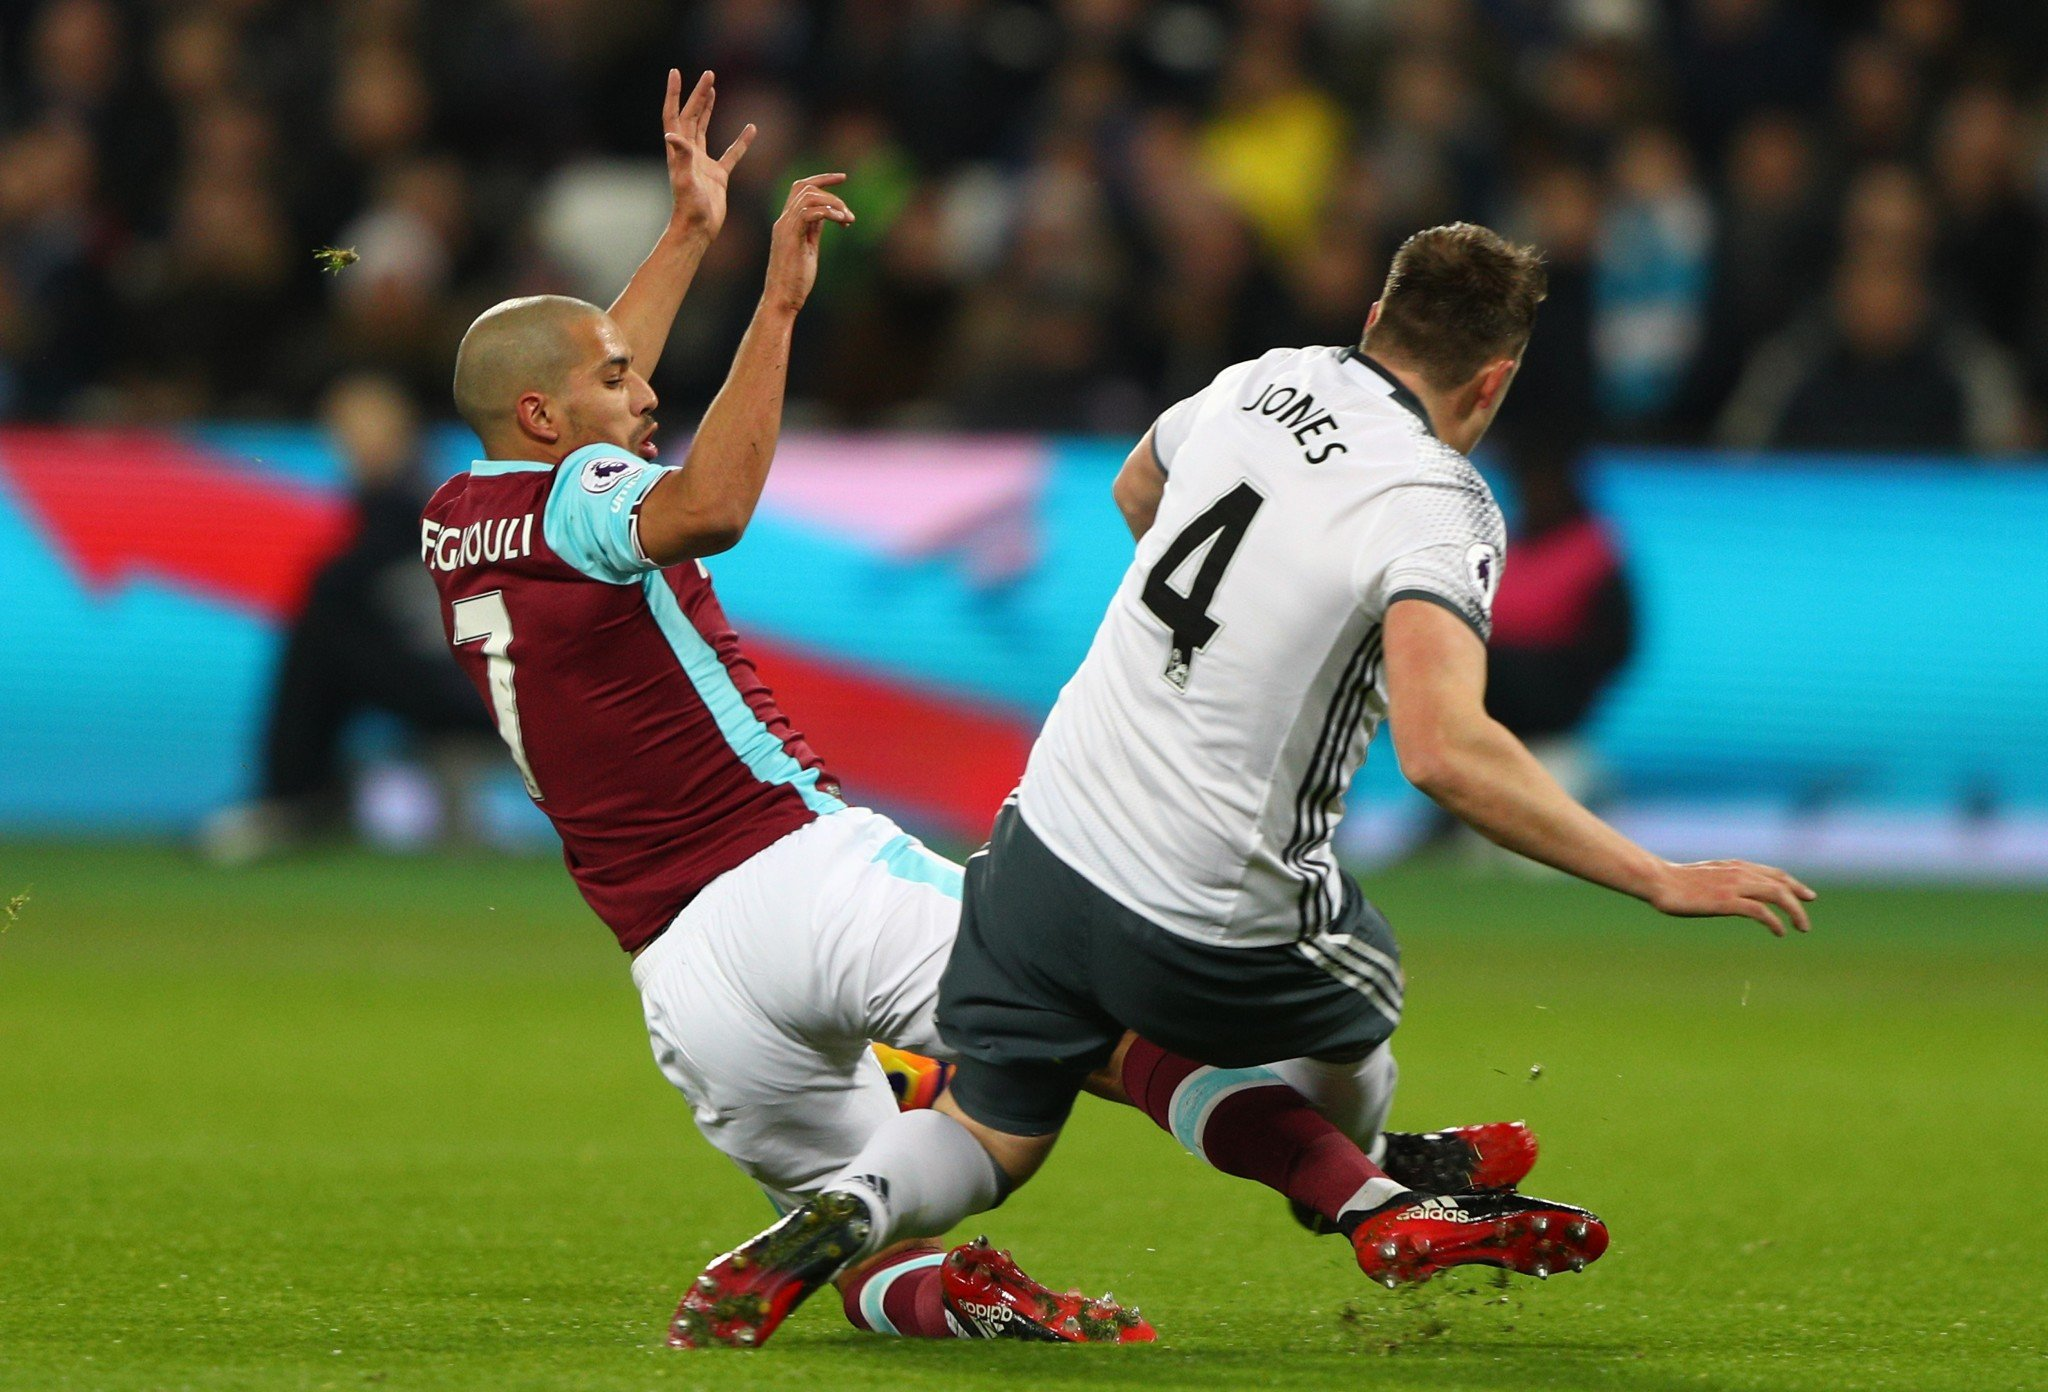 Sofiane Feghouli was sent off for this tackle on Phil Jones